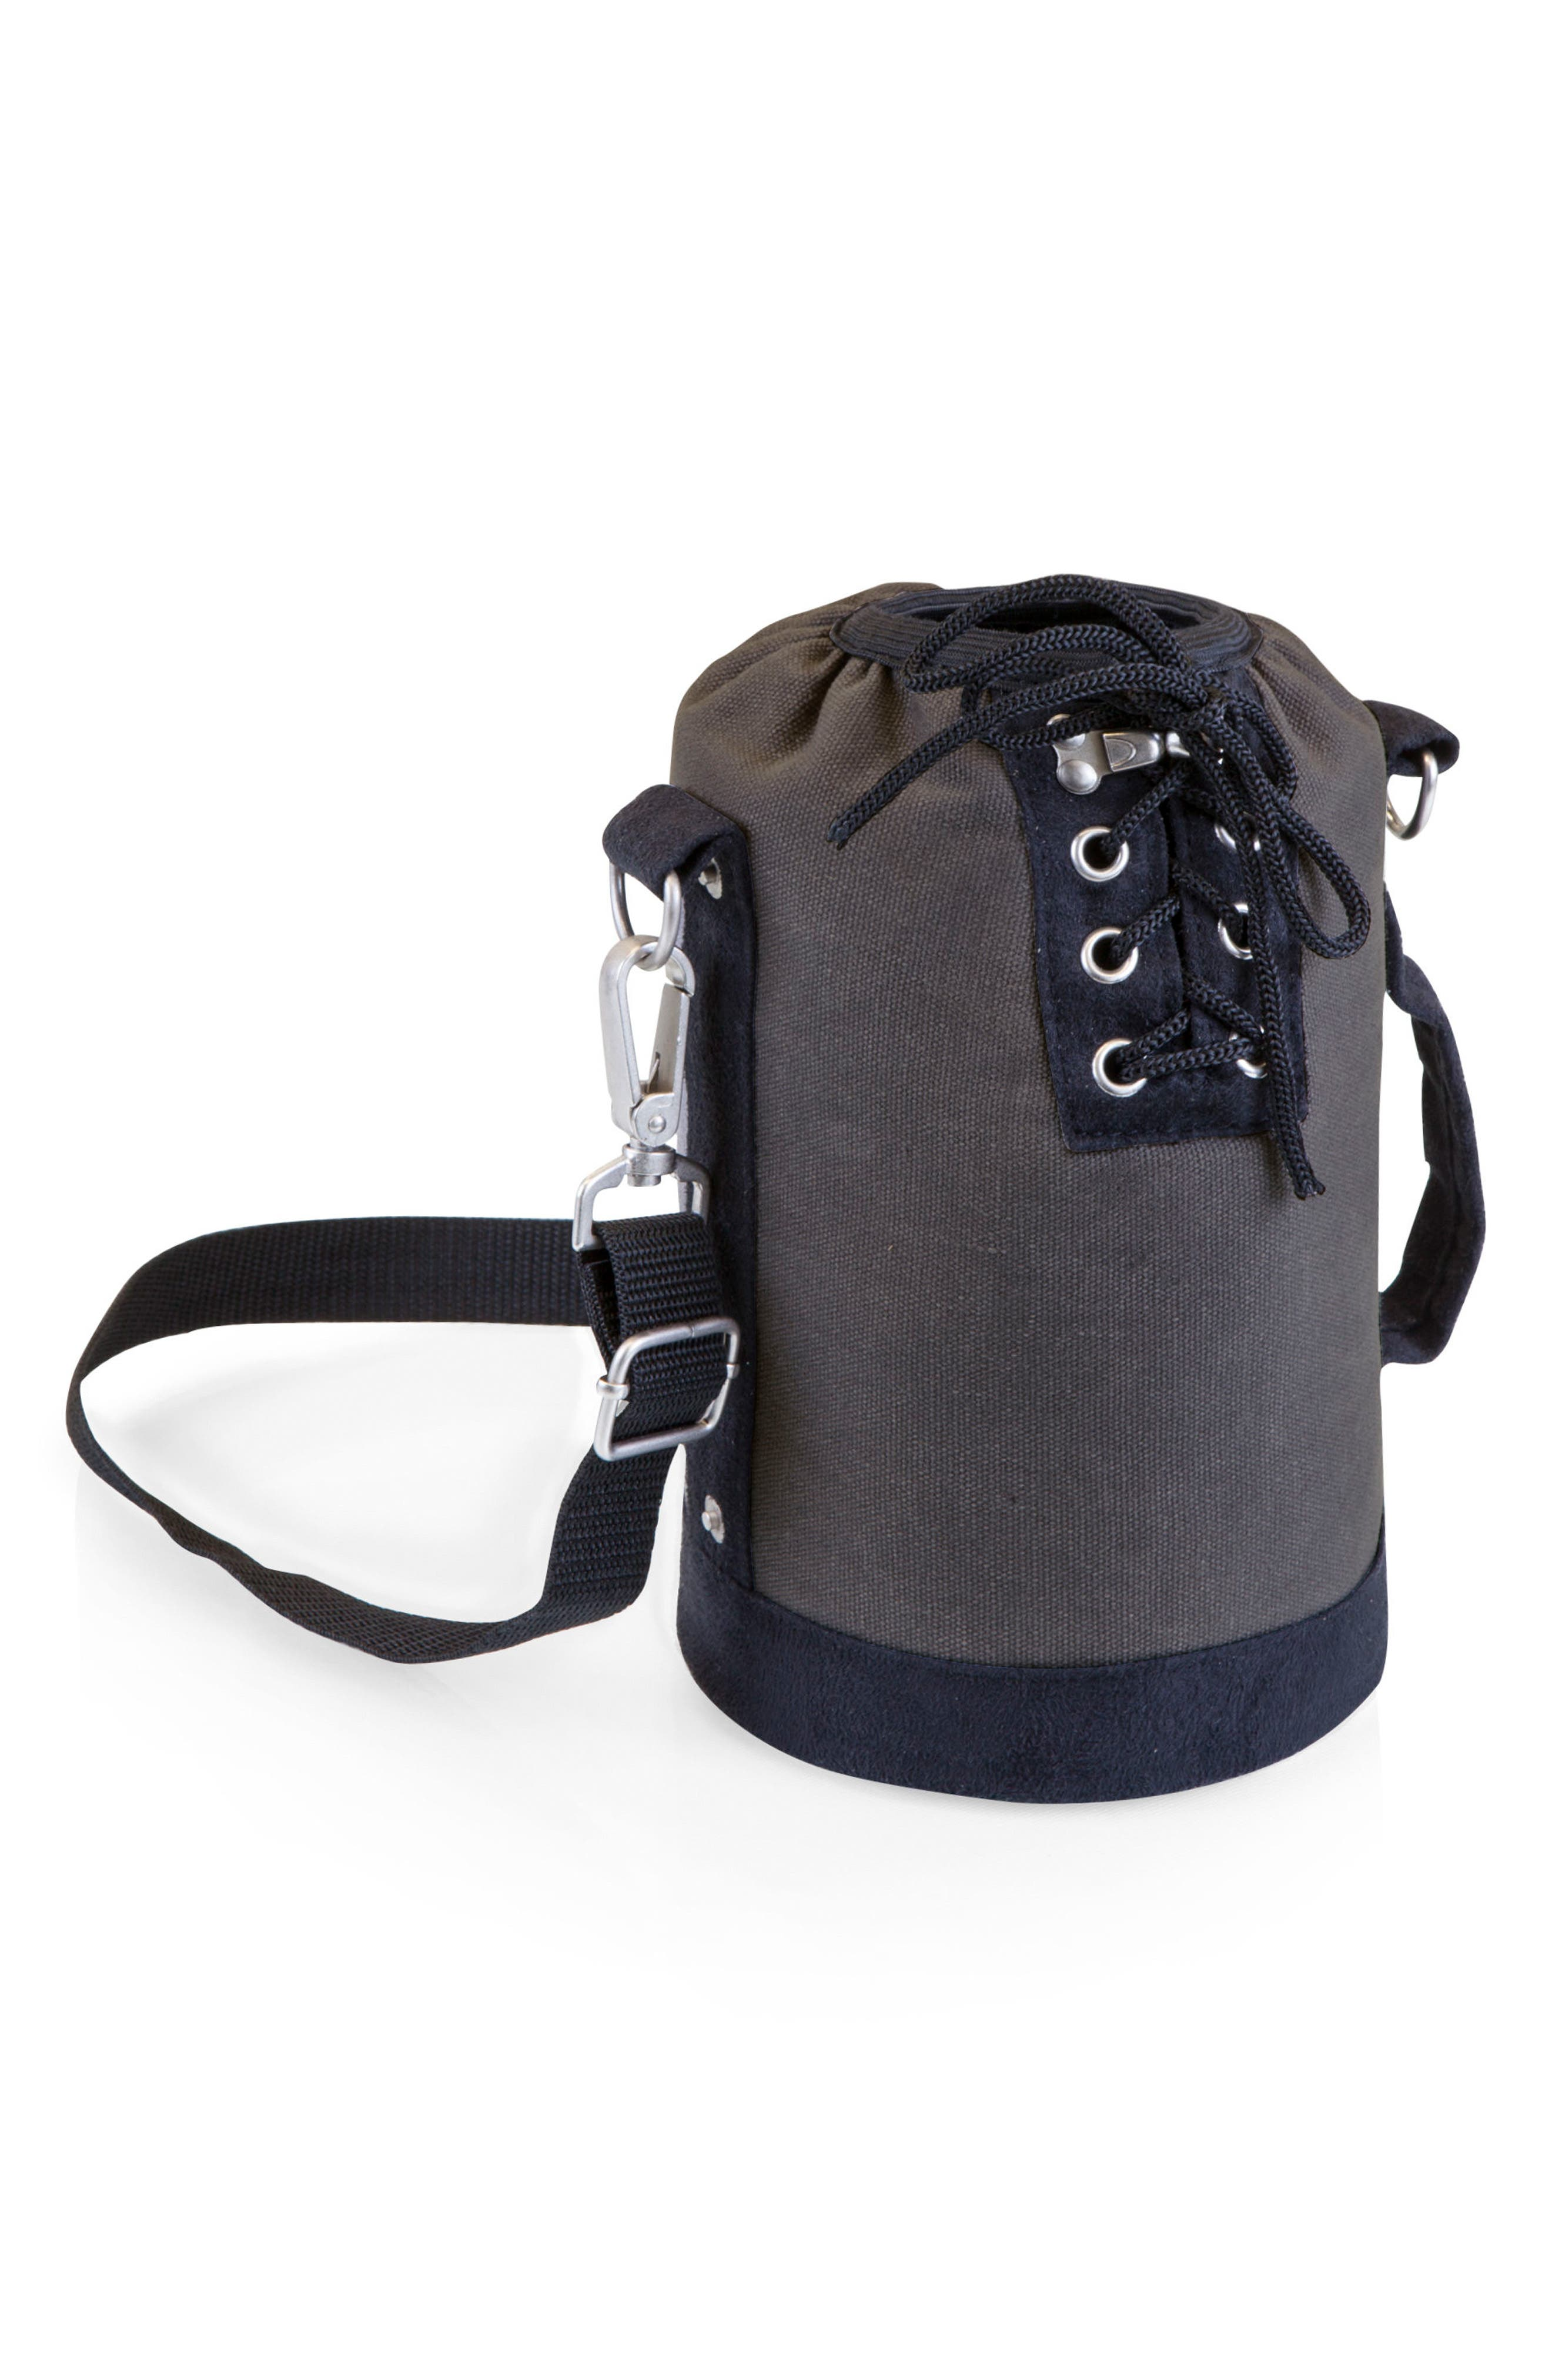 Insulated Growler Tote,                         Main,                         color, Grey W/ Black